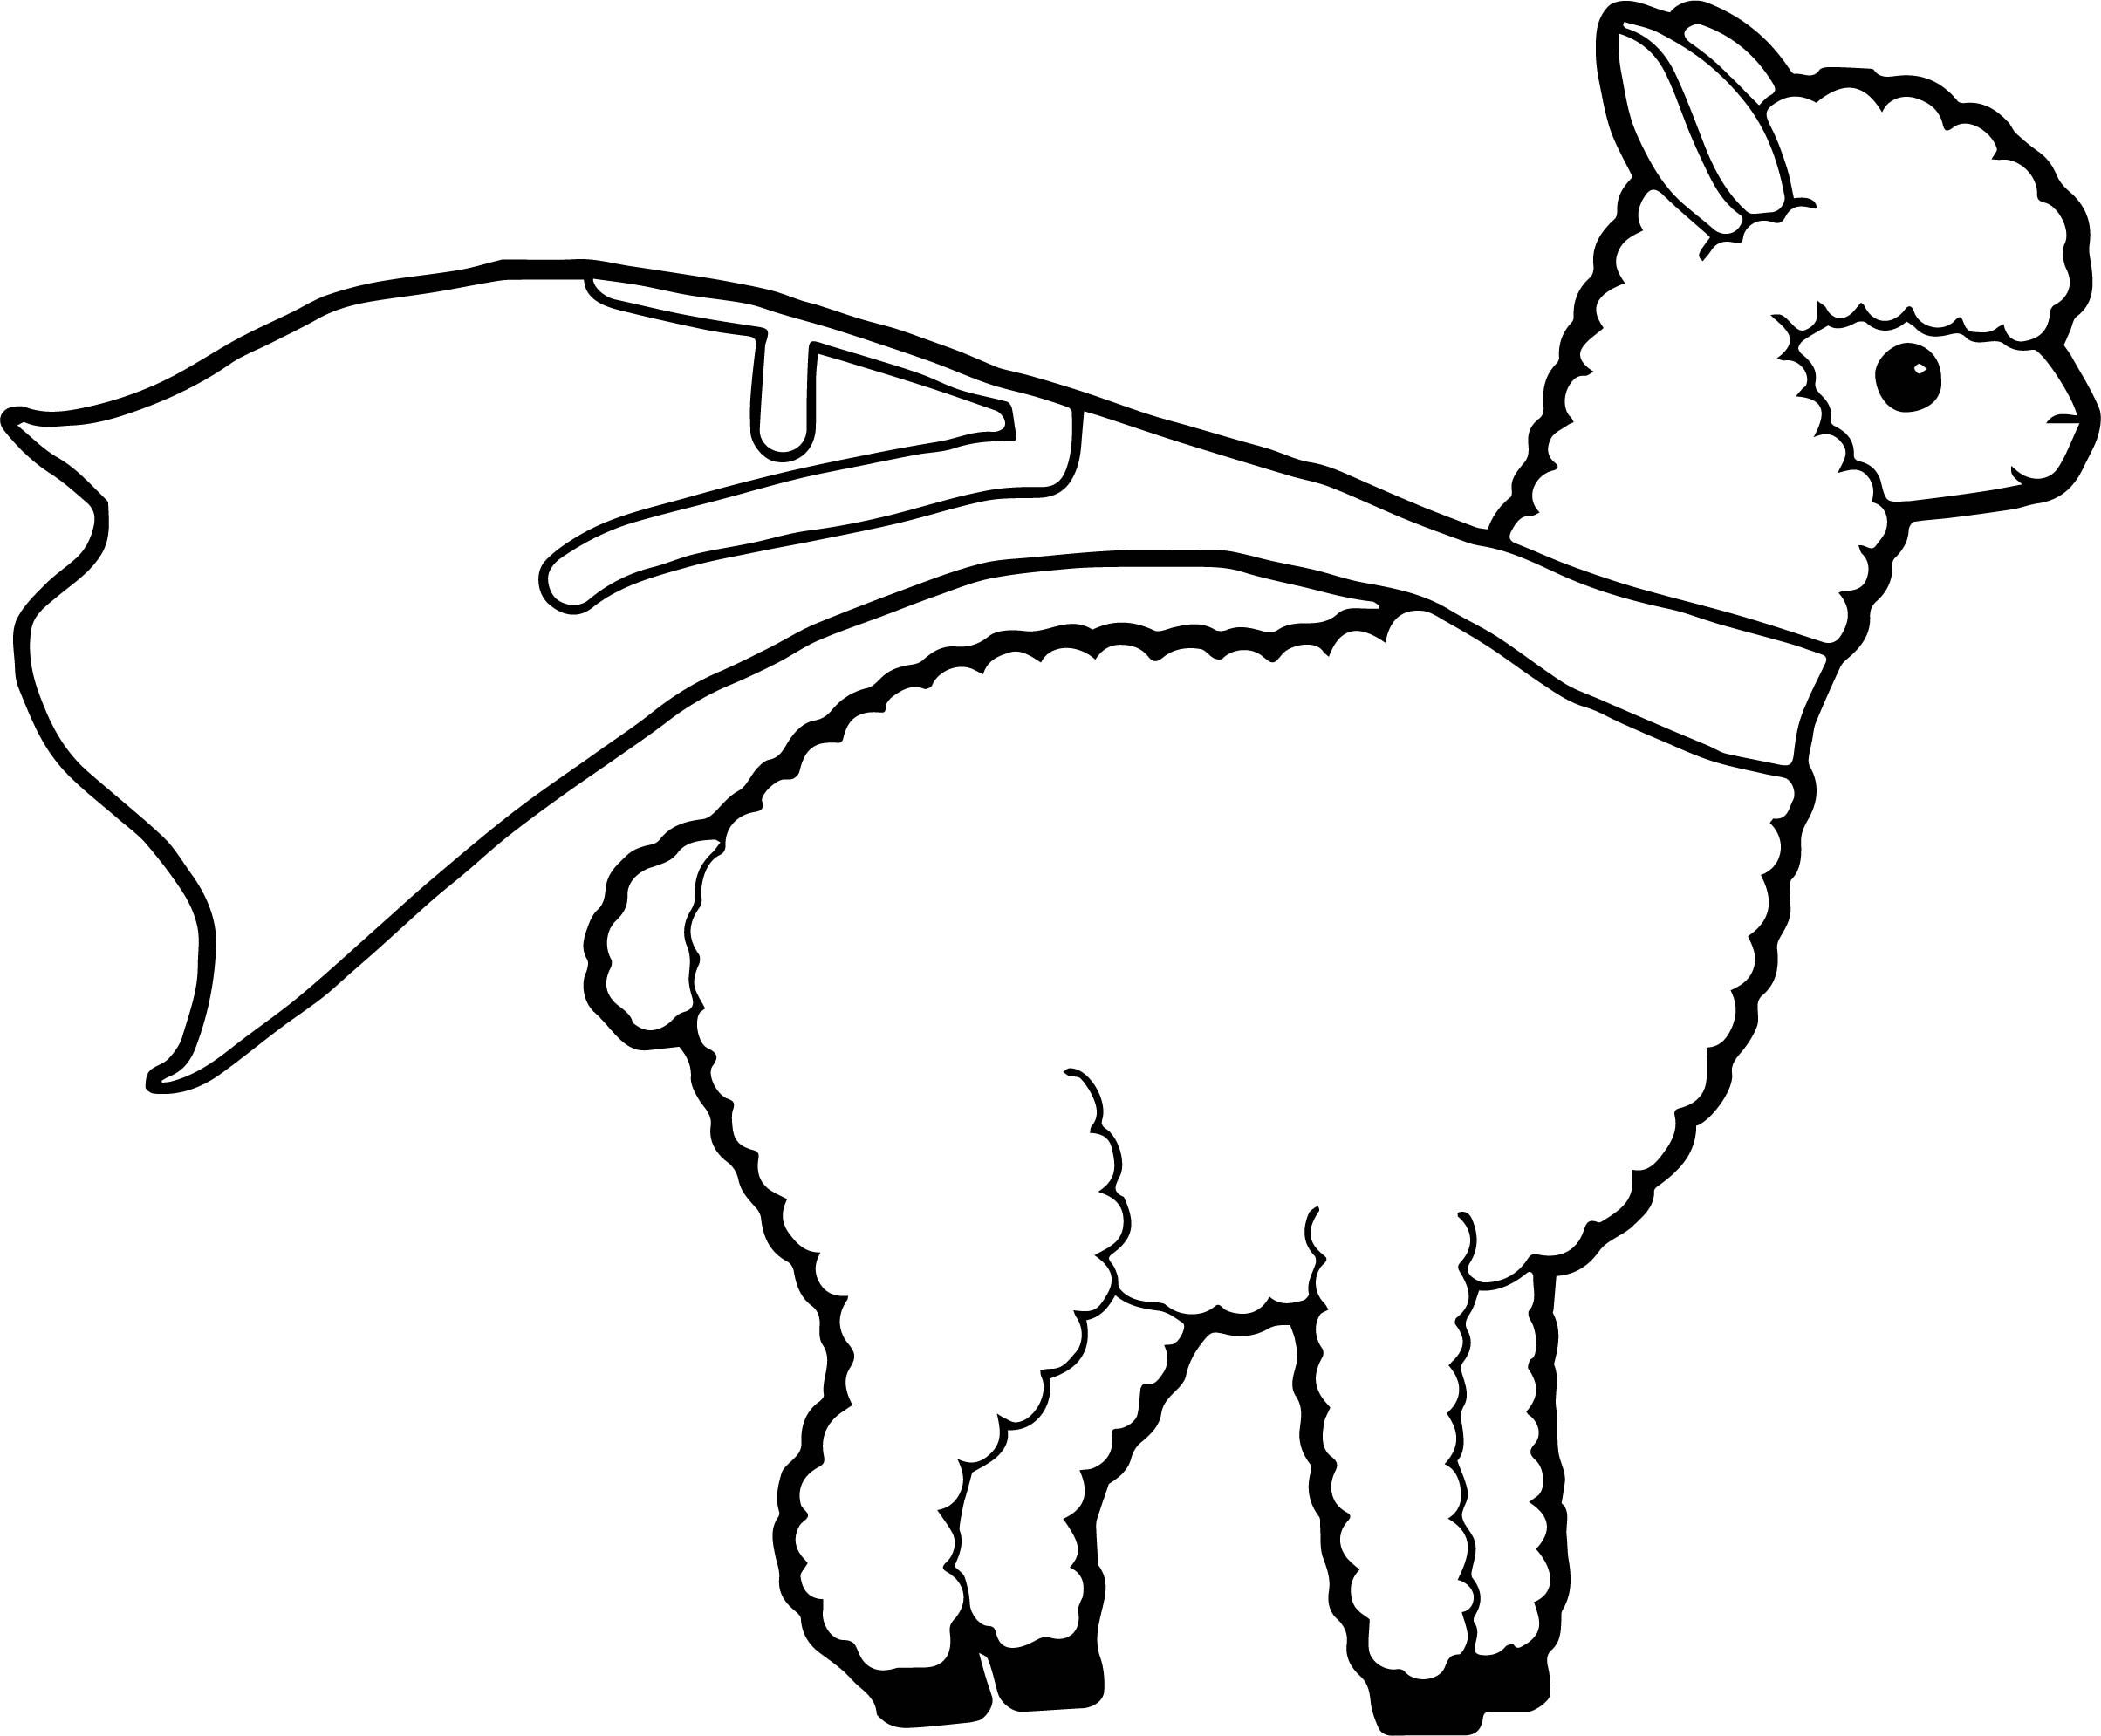 Llama Coloring Pages Free Download Coloring Pages For Kids Coloring Pages Coloring Books